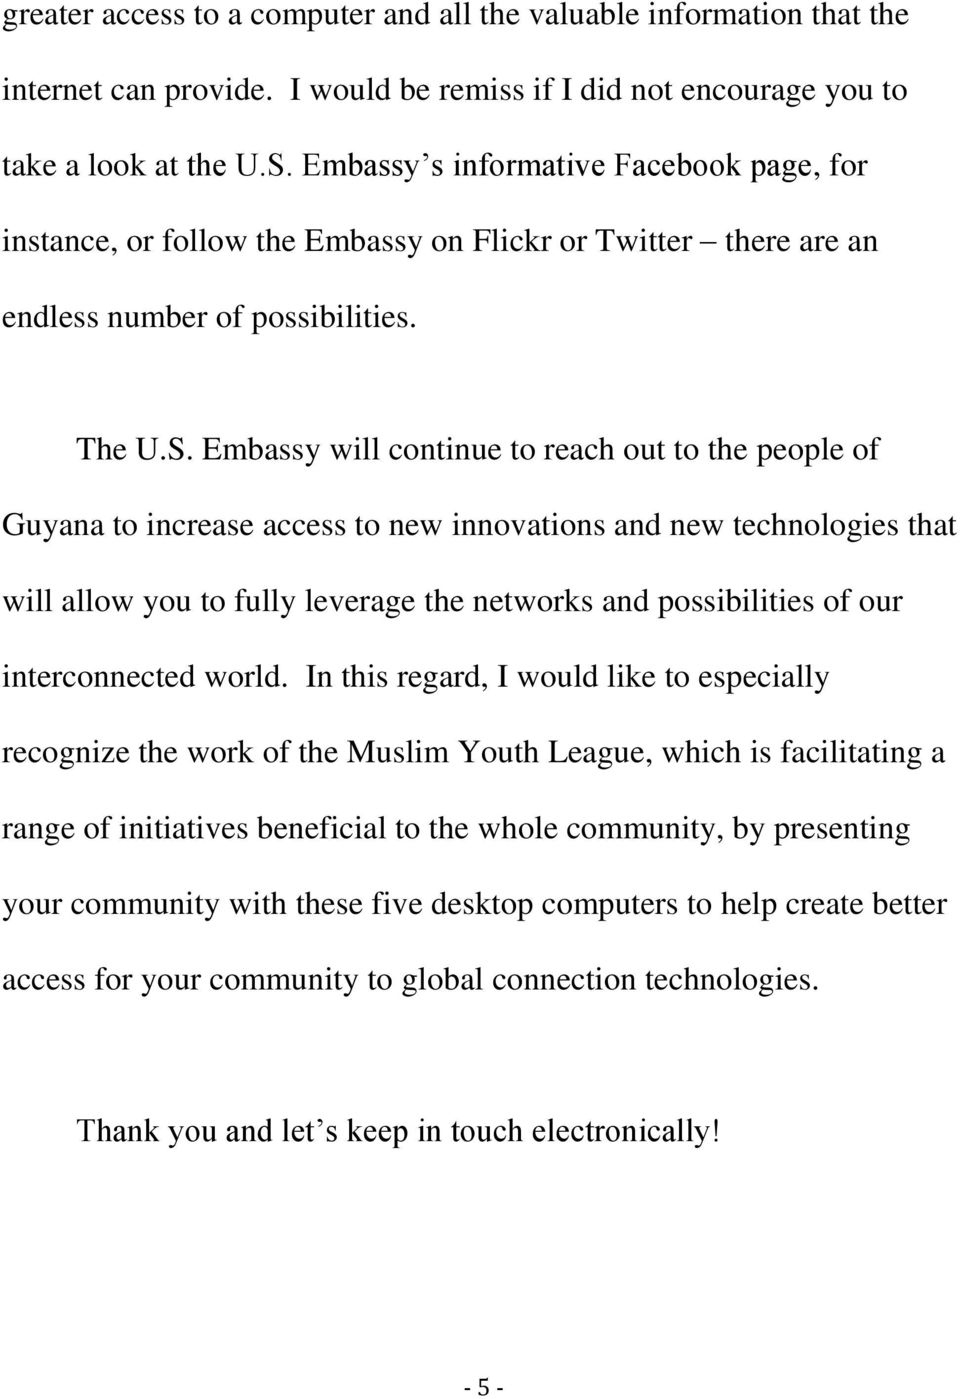 Embassy will continue to reach out to the people of Guyana to increase access to new innovations and new technologies that will allow you to fully leverage the networks and possibilities of our